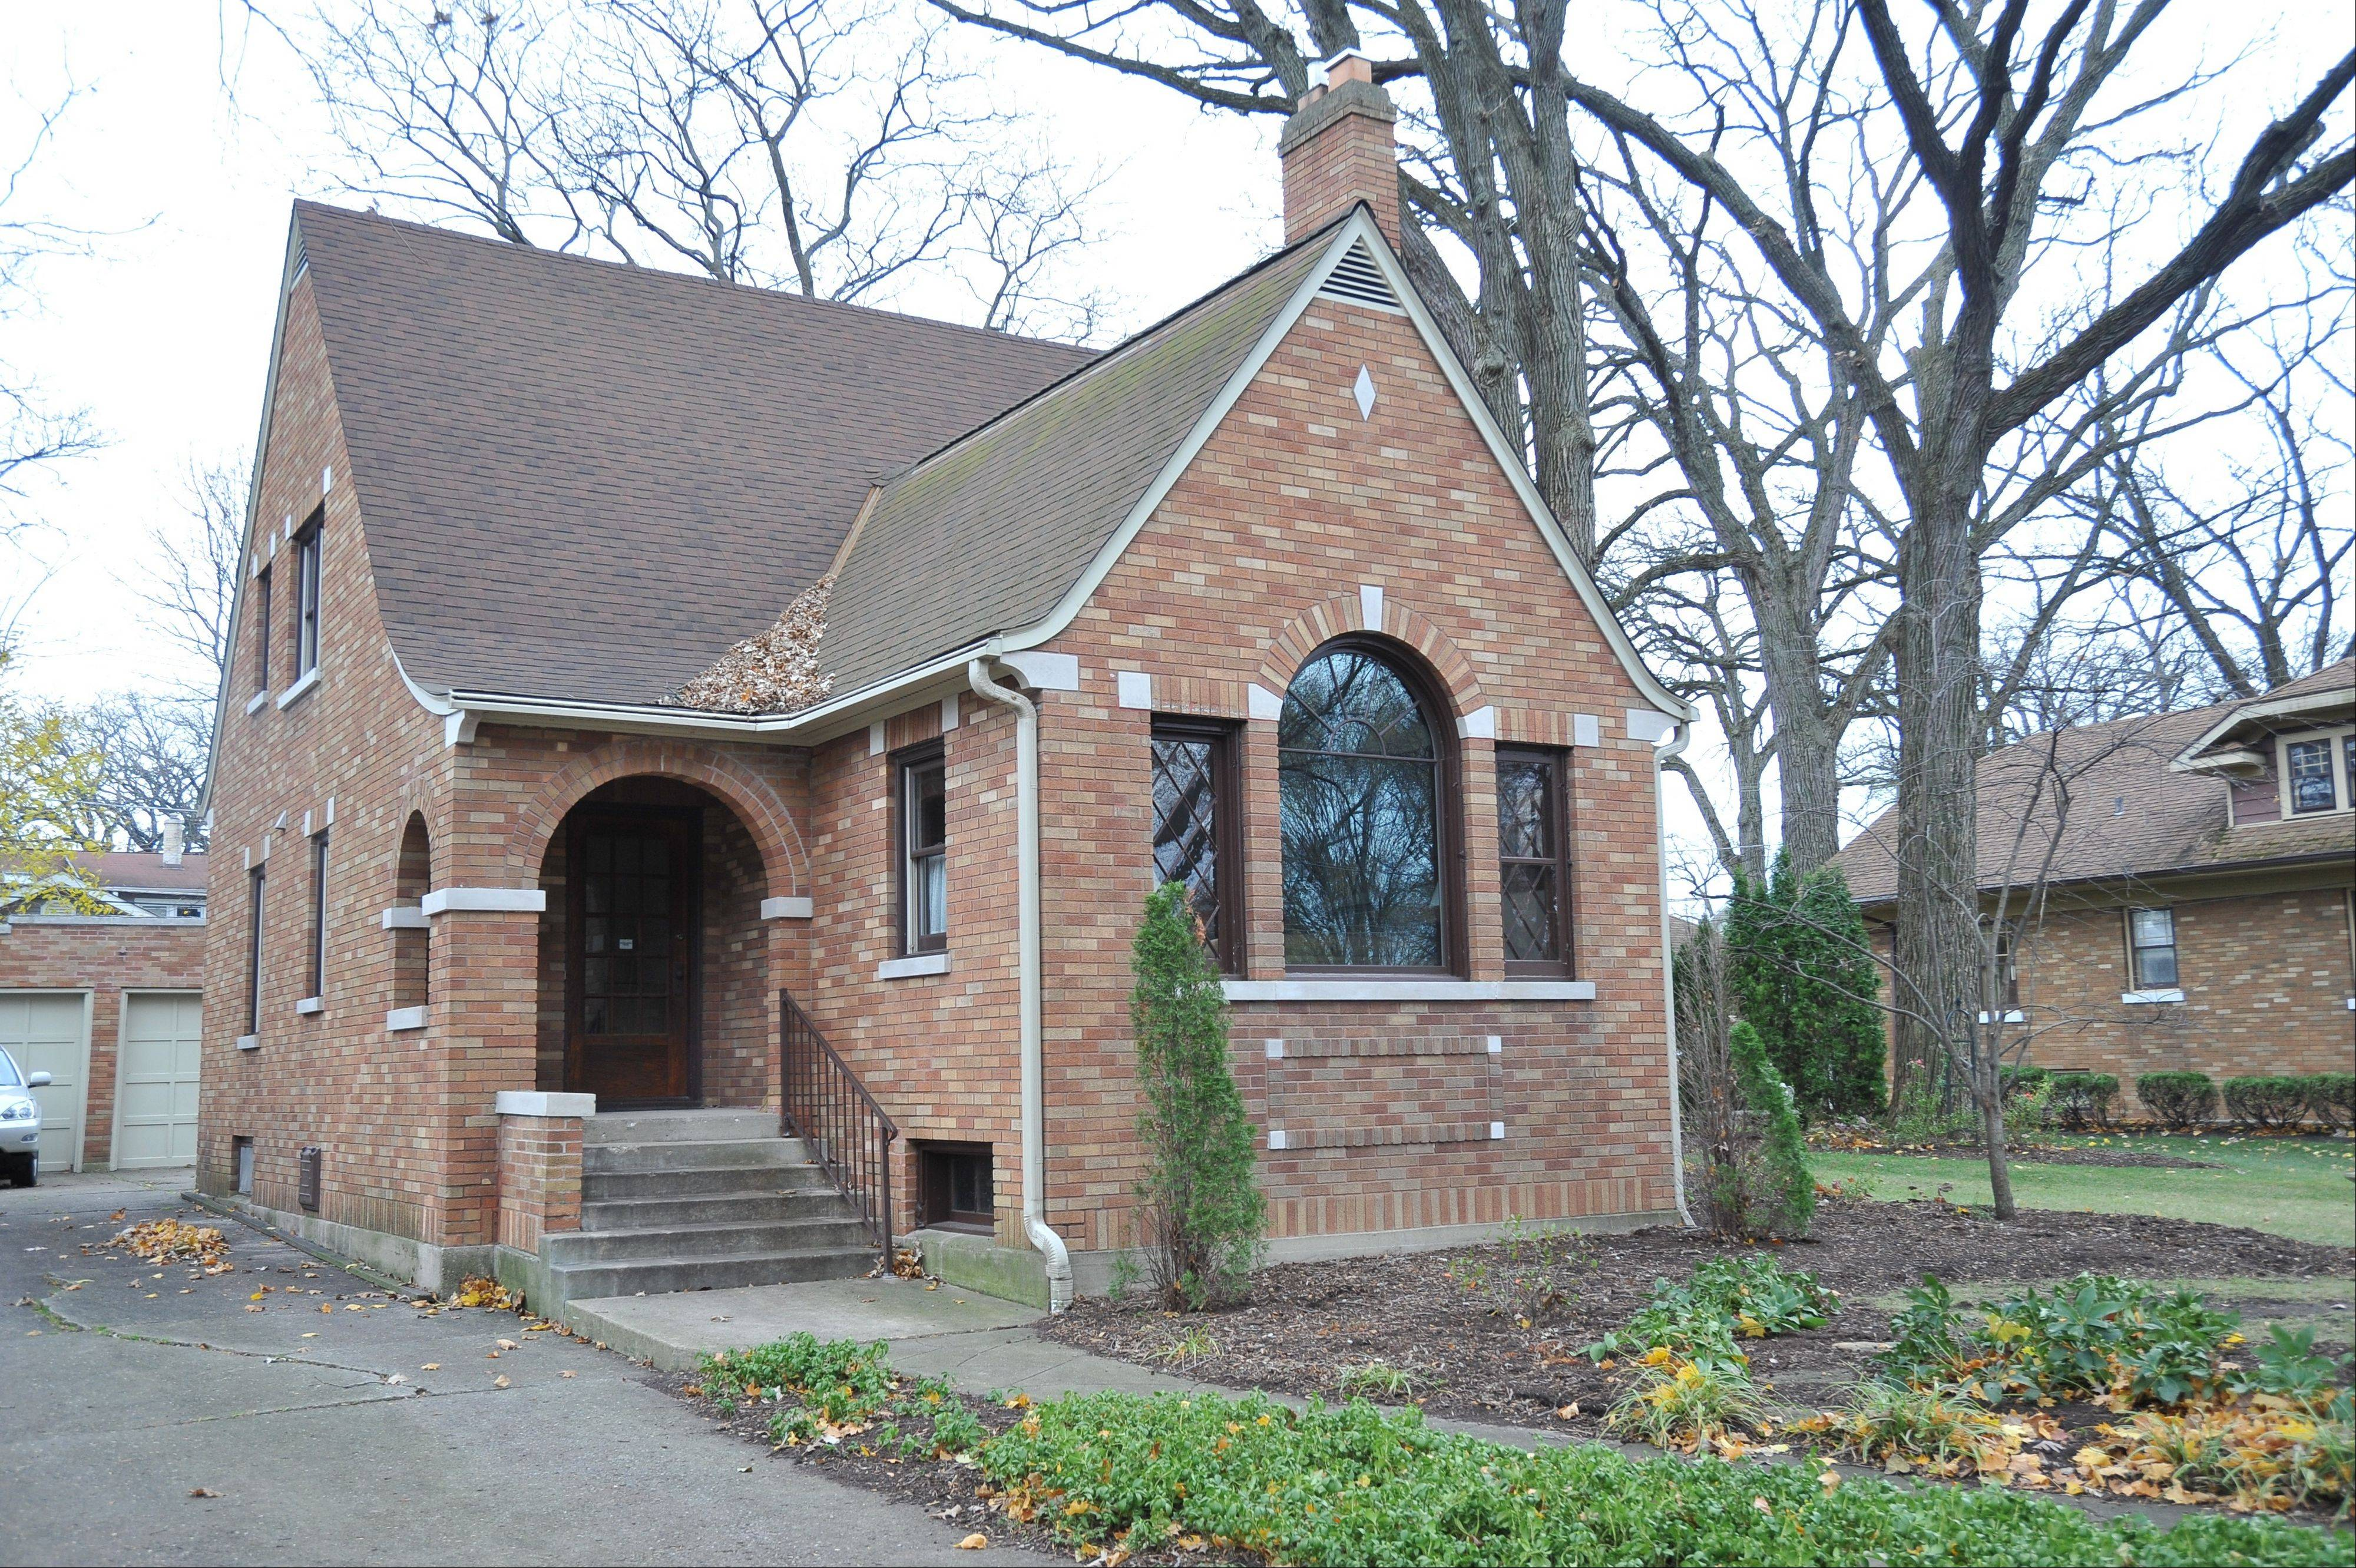 A Tudor revival from around 1932 at 205 N. Hickory Ave. was built for John and Ruth Baxman and is currently owned by Jim and Nancy Butler, who have resided there since 1996.